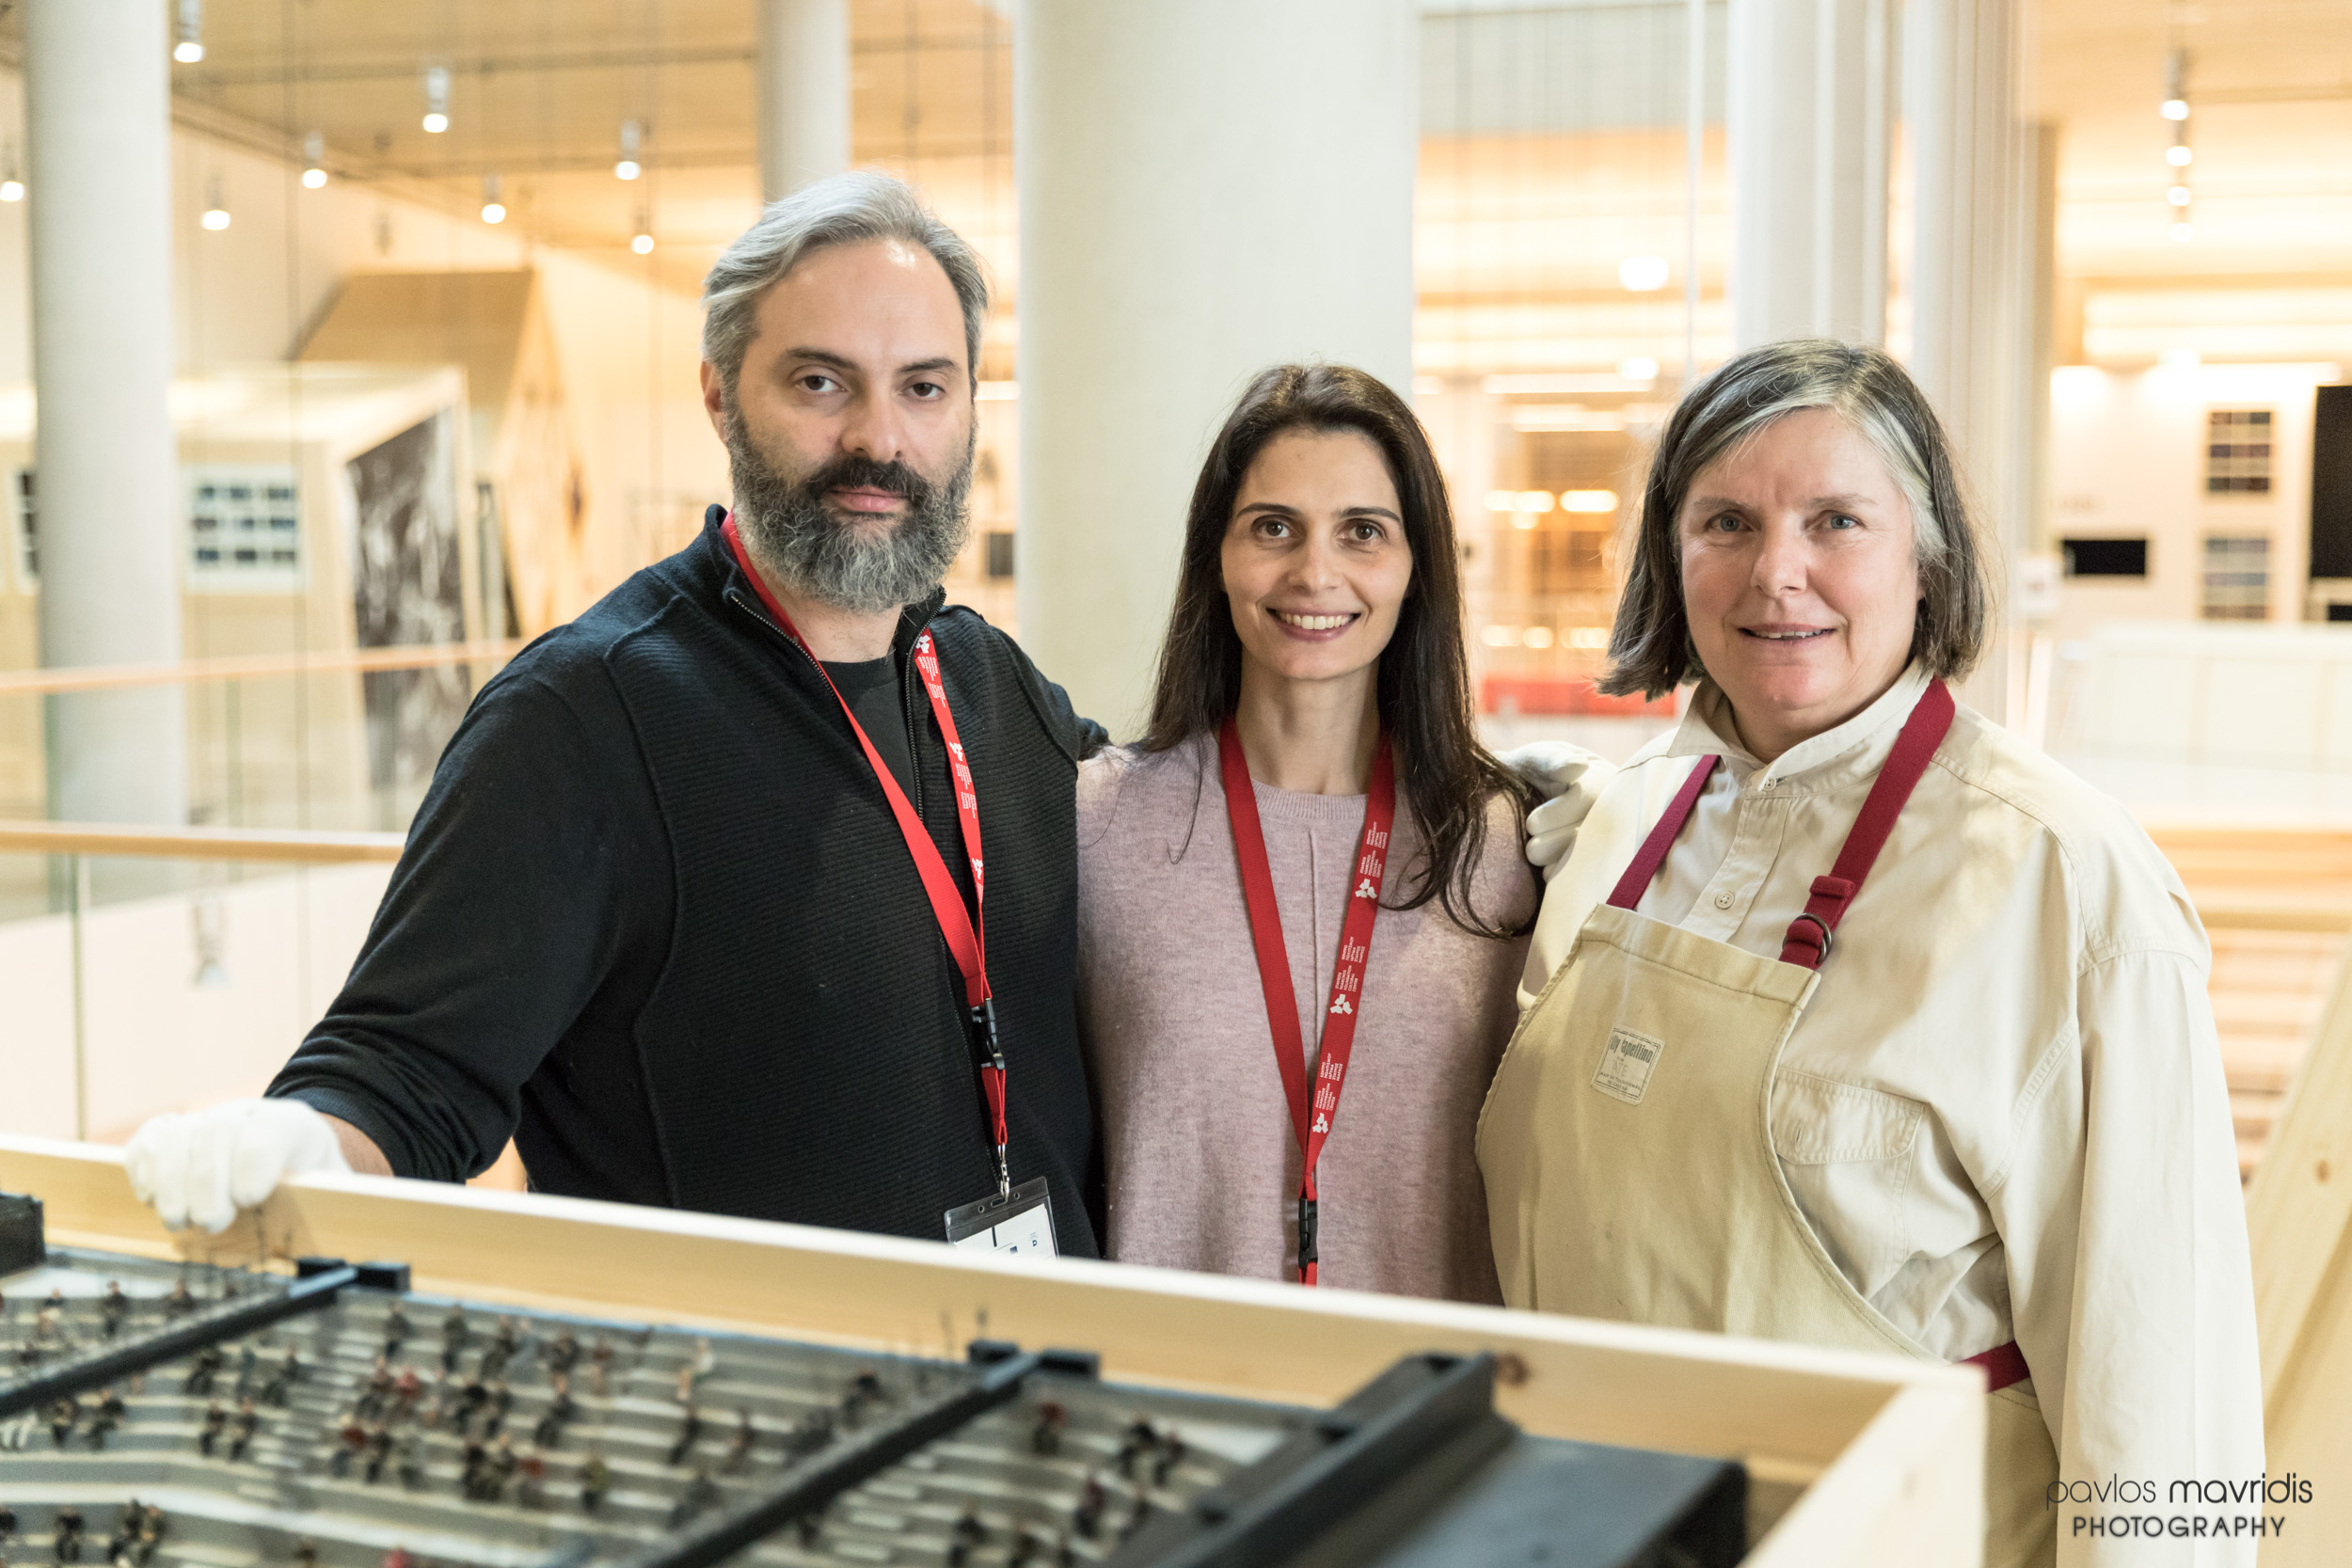 From left to right: Adonis Volanakis (Curator), Valentina Tamiolaki (Lighting Designer) and Maria Alexiou (Prints and Drawings Paper Conservator MIET)